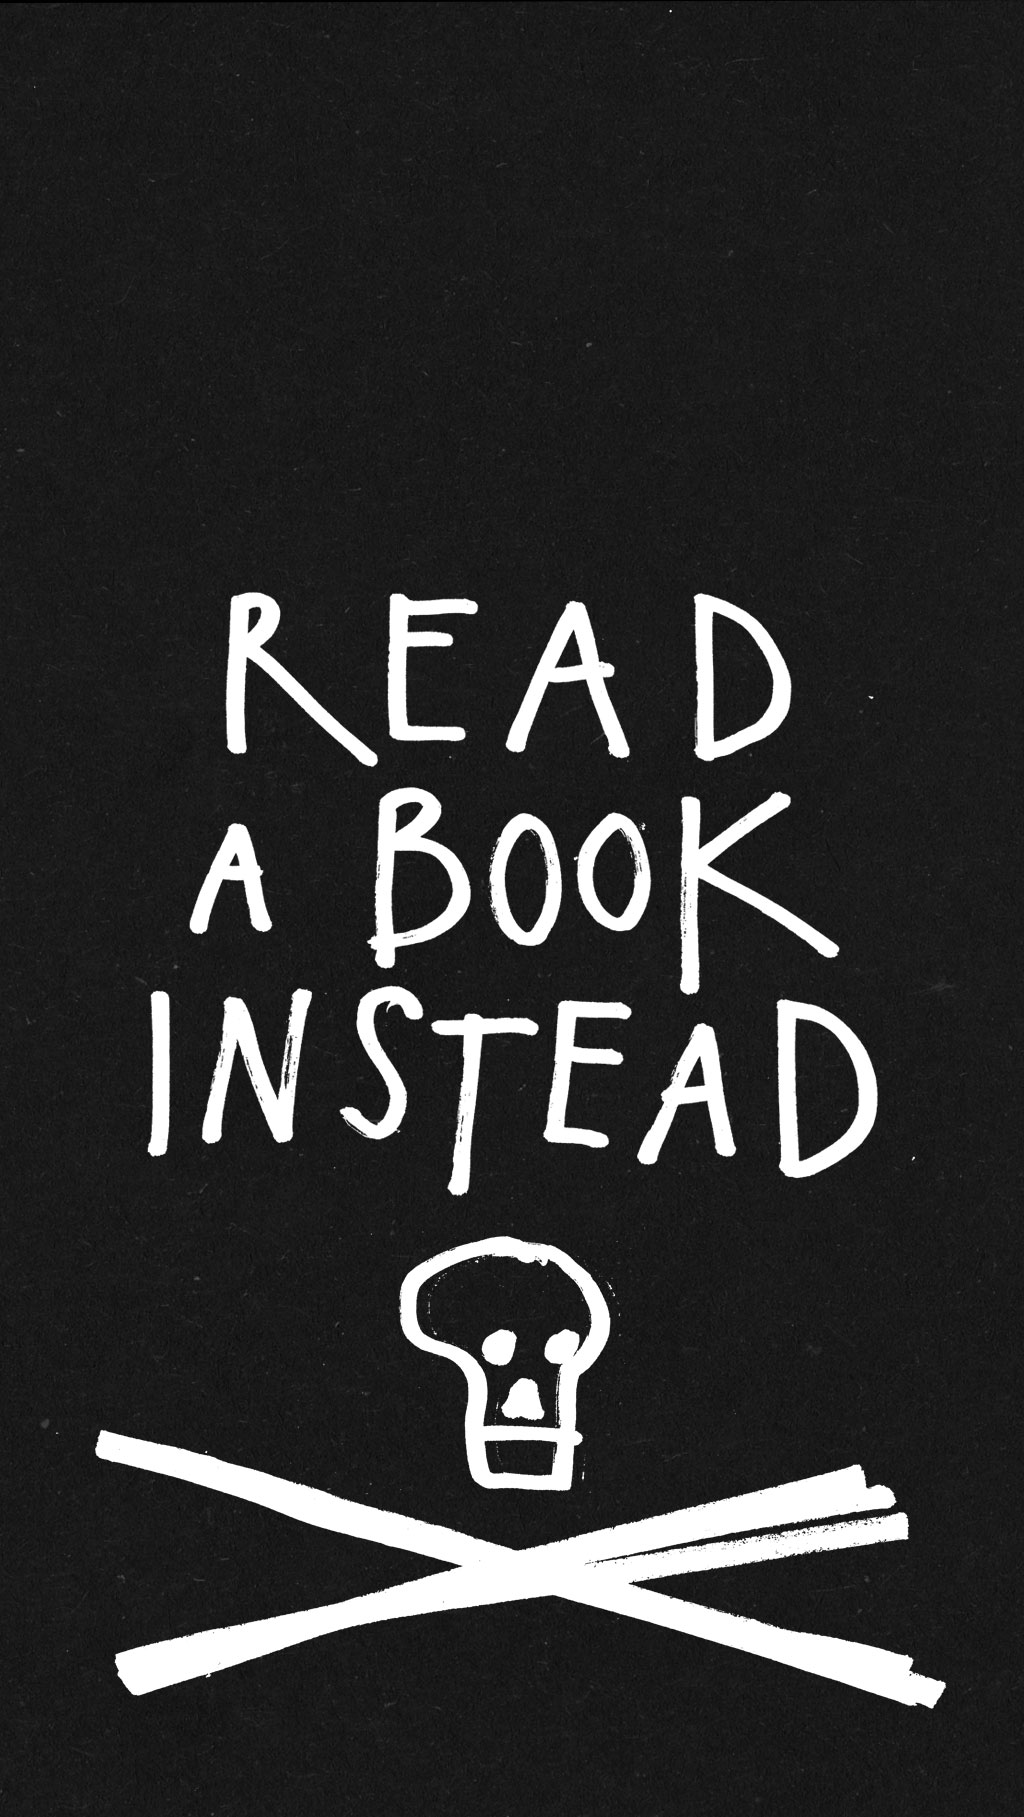 All Sizes Read A Book Instead Iphone Wallpaper Flickr